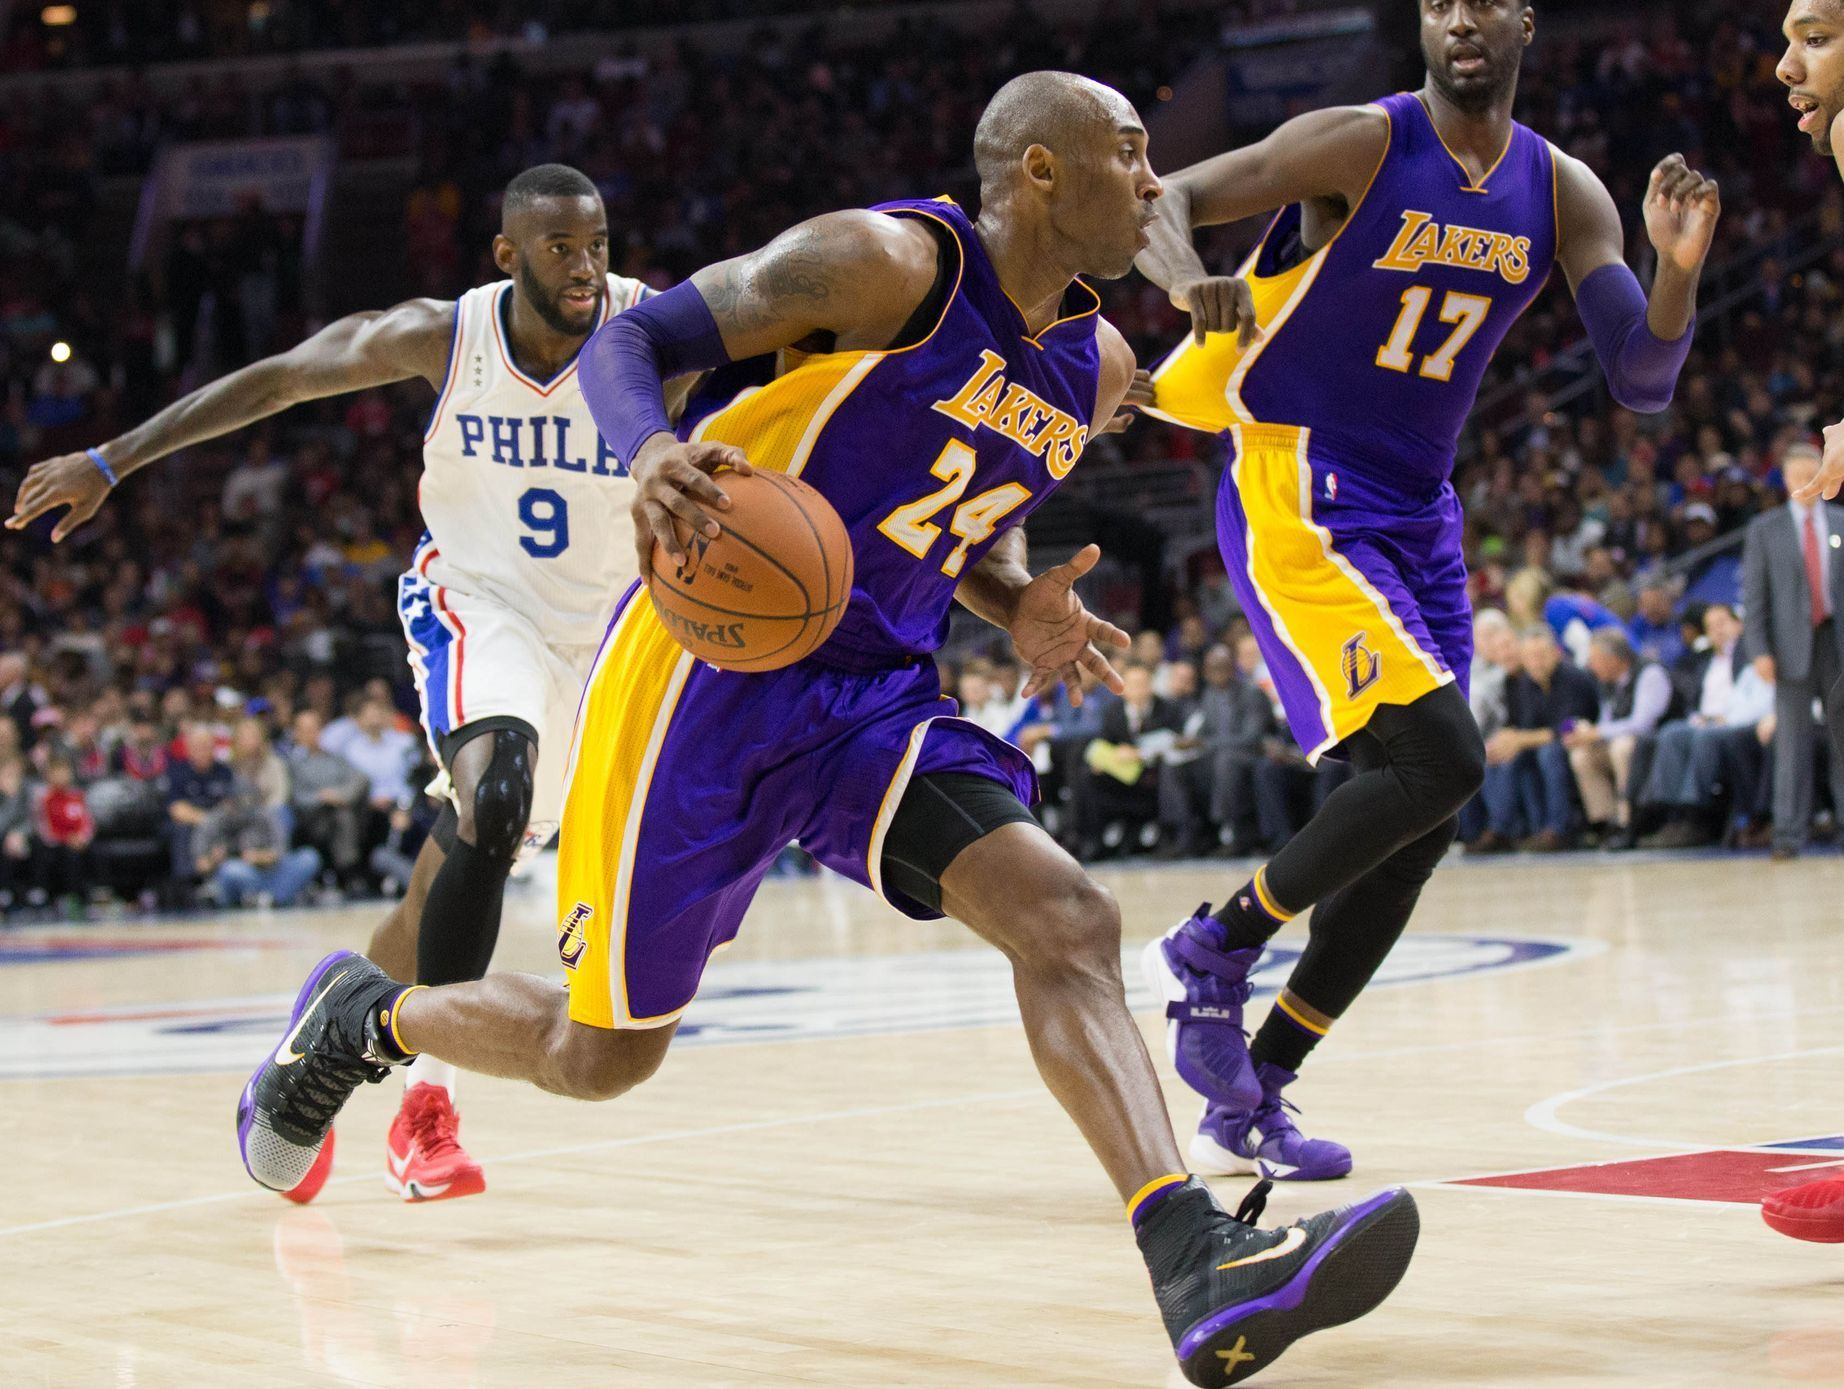 NBA: Los Angeles Lakers at Philadelphia 76ers (Kobe Bryant)